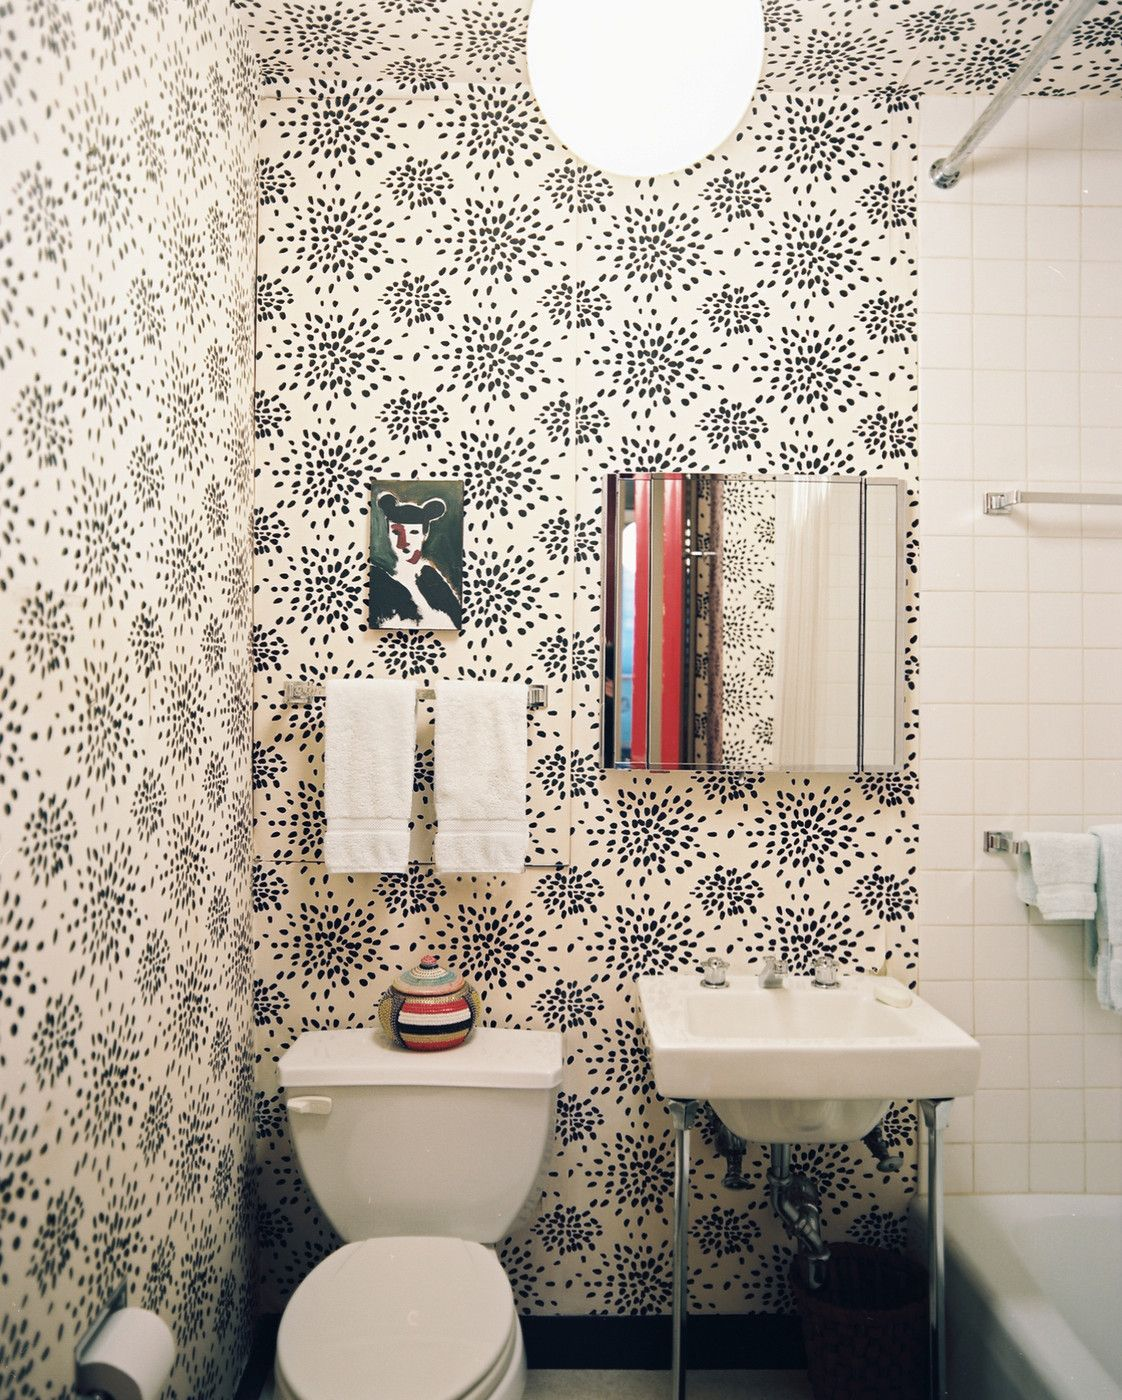 Eclectic Modern Bathroom: Black And White Patterned Wallpaper And Square  White Tile In A Bathroom.